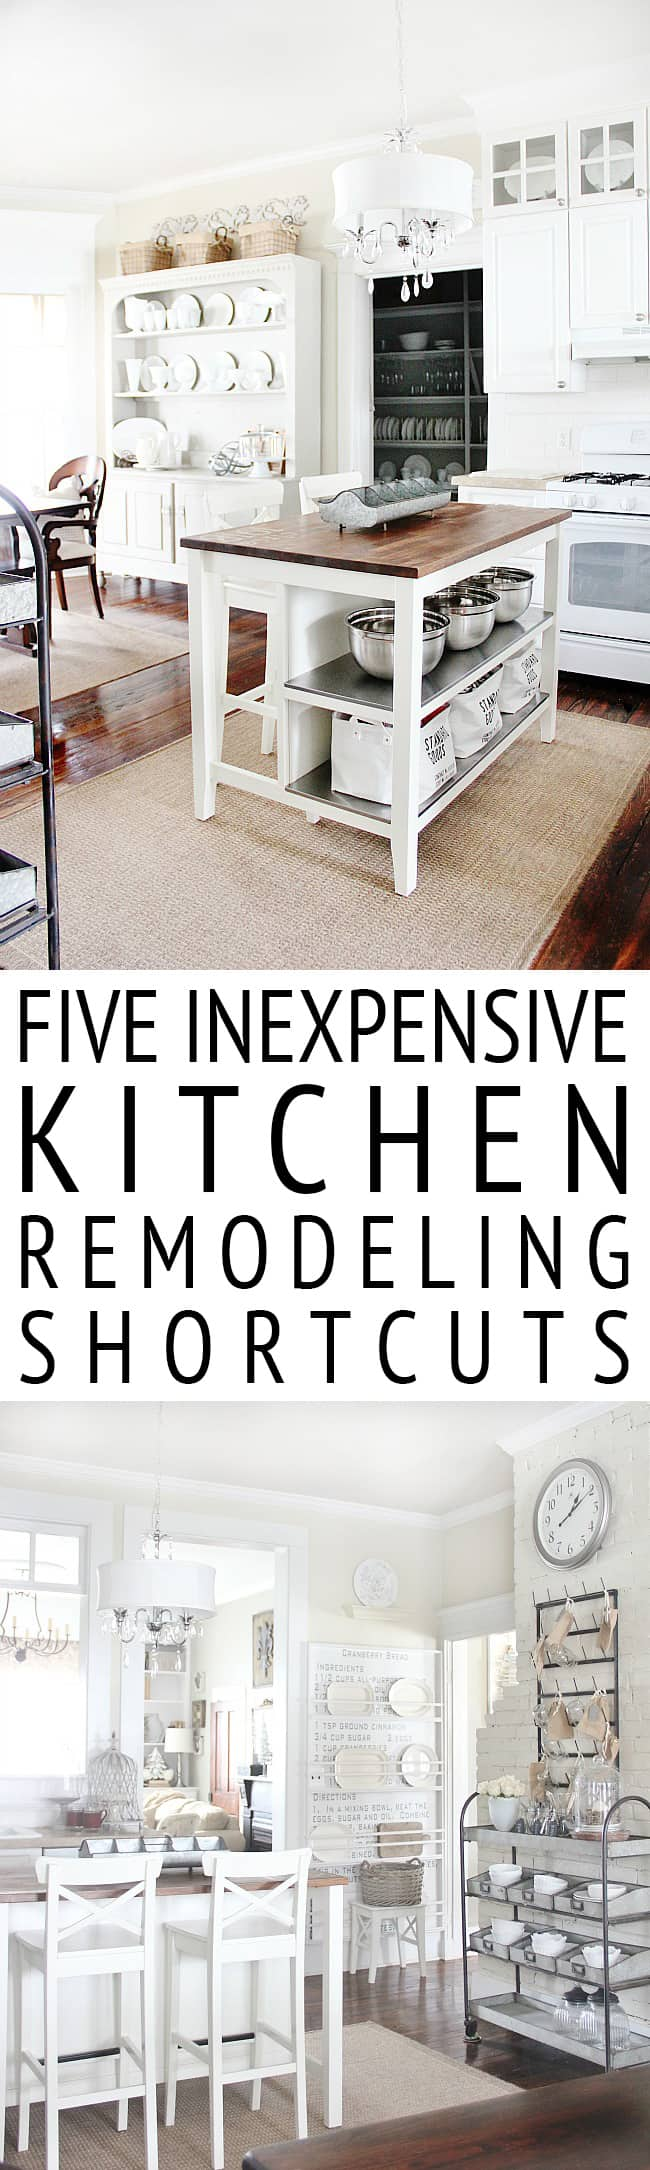 Five Inexpensive Kitchen Remodeling Shortcuts - Thistlewood Farm